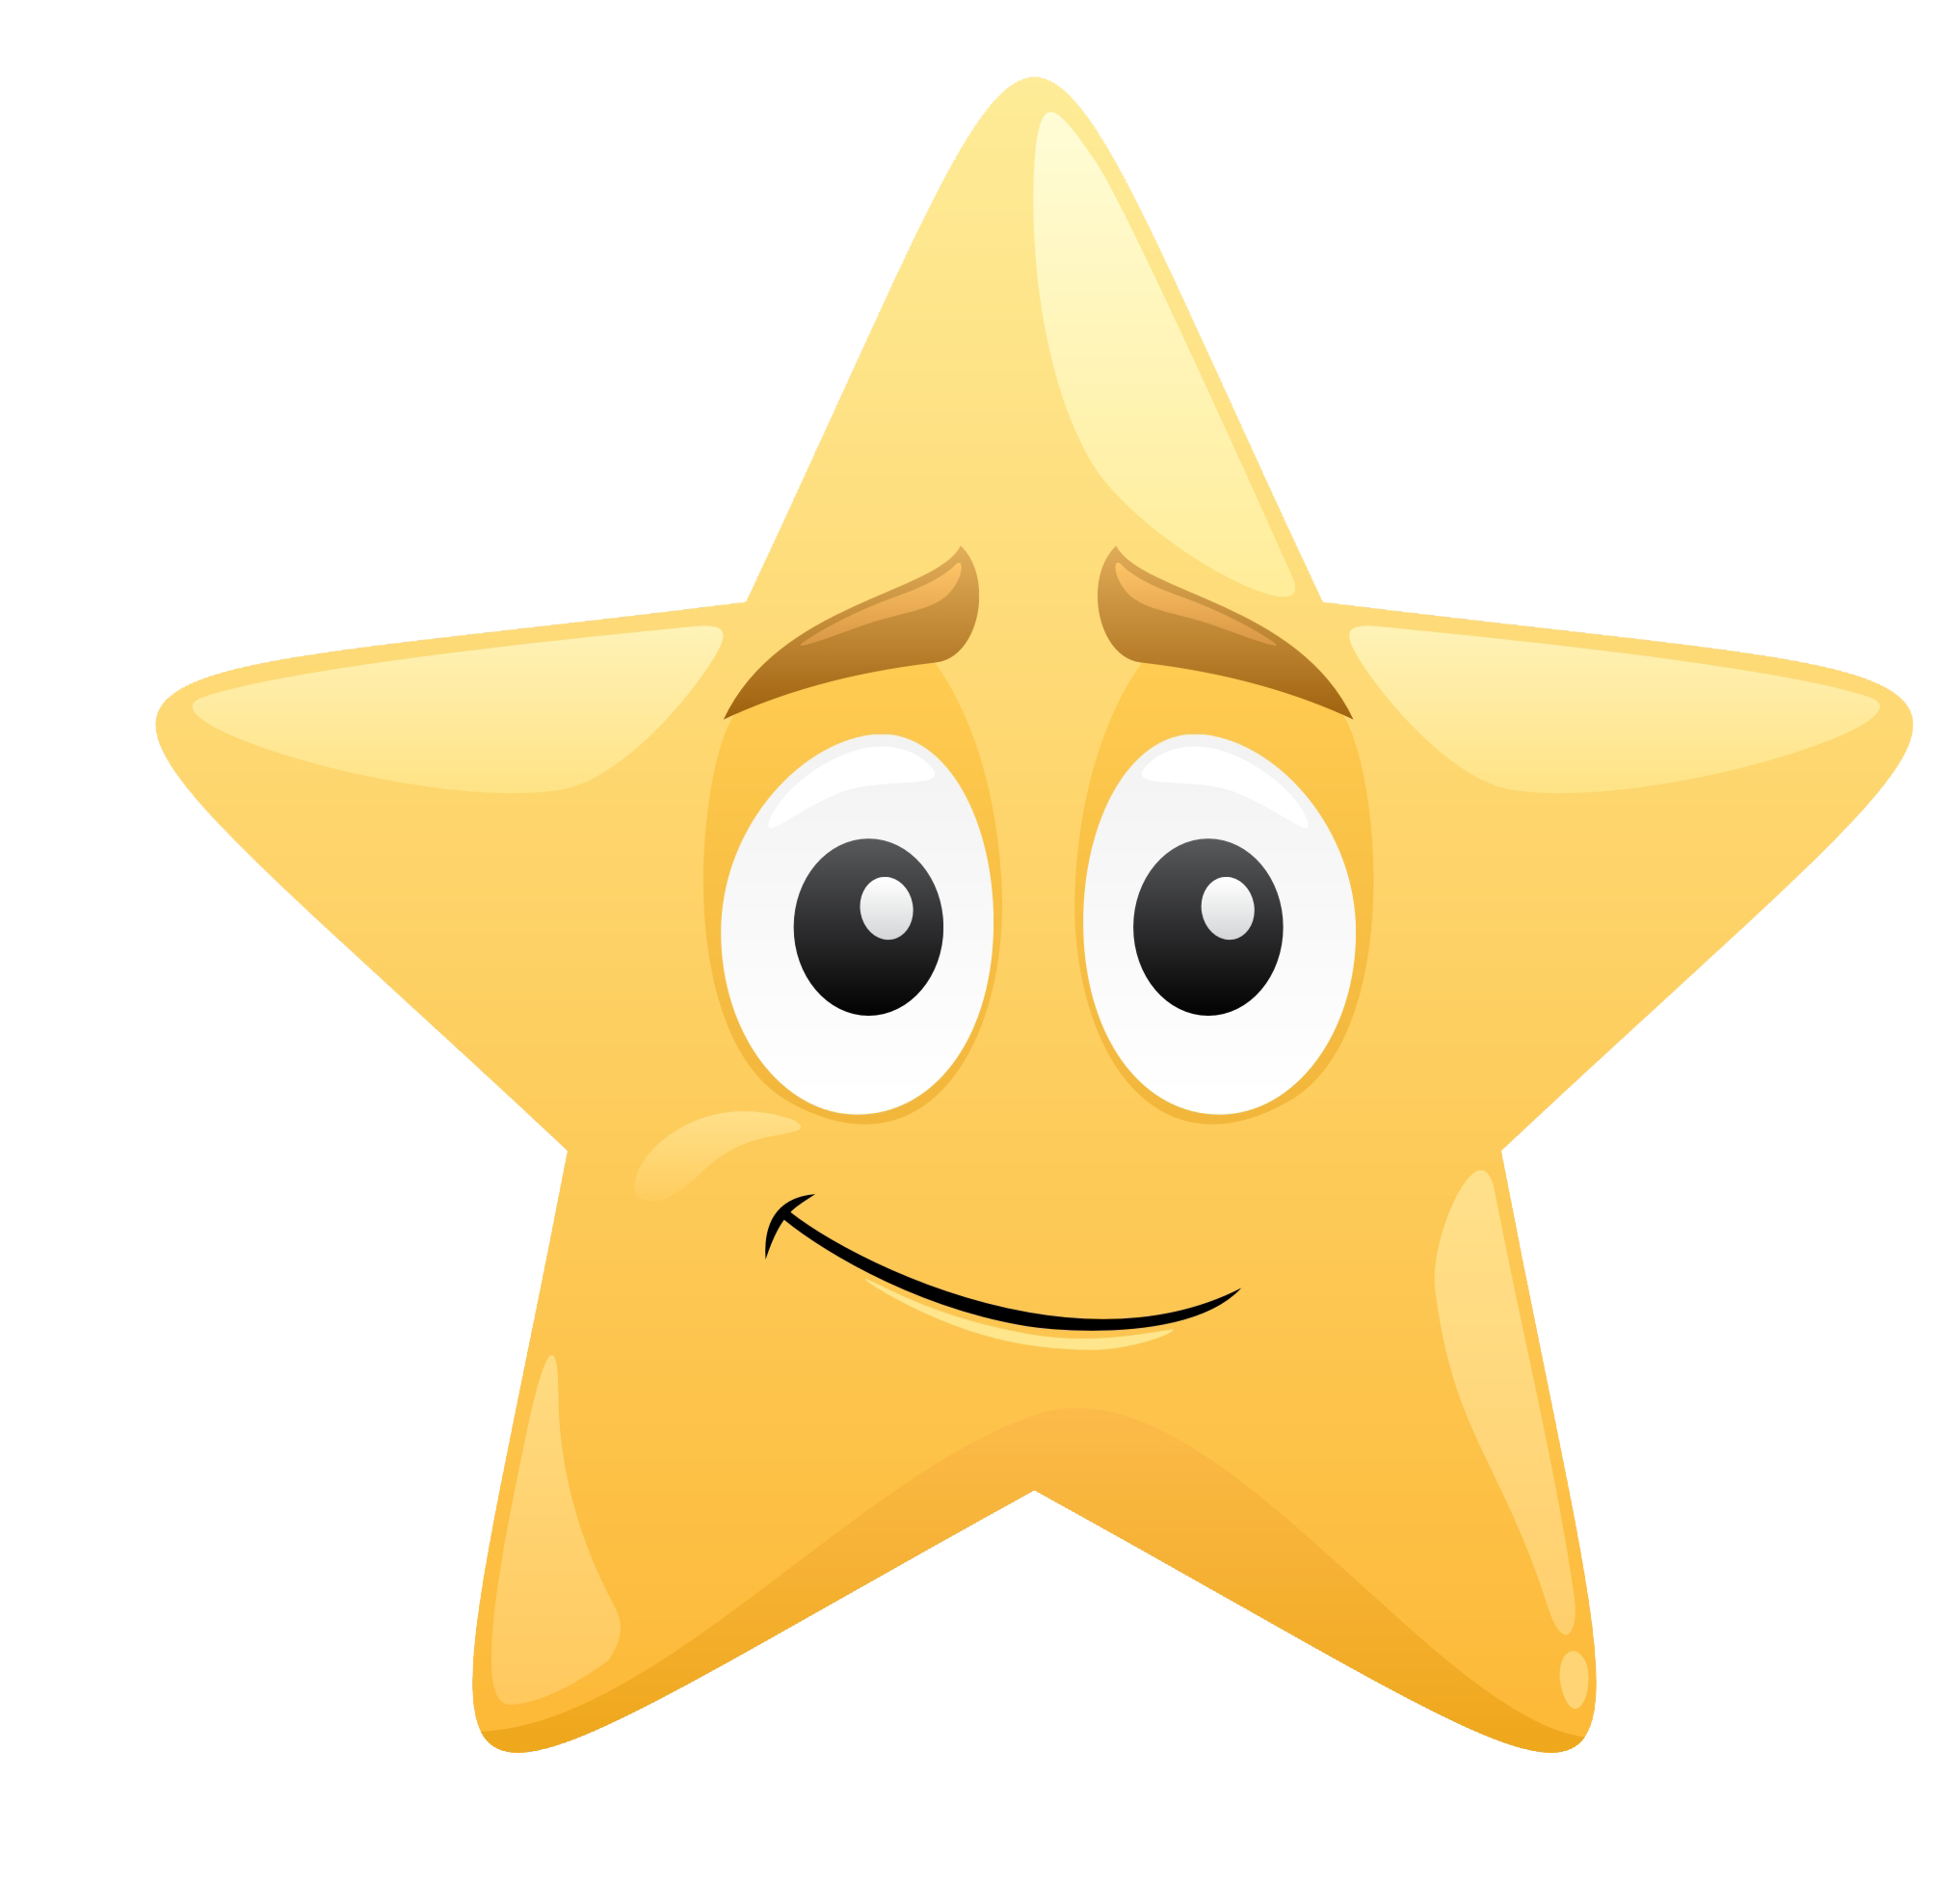 star with smiley face